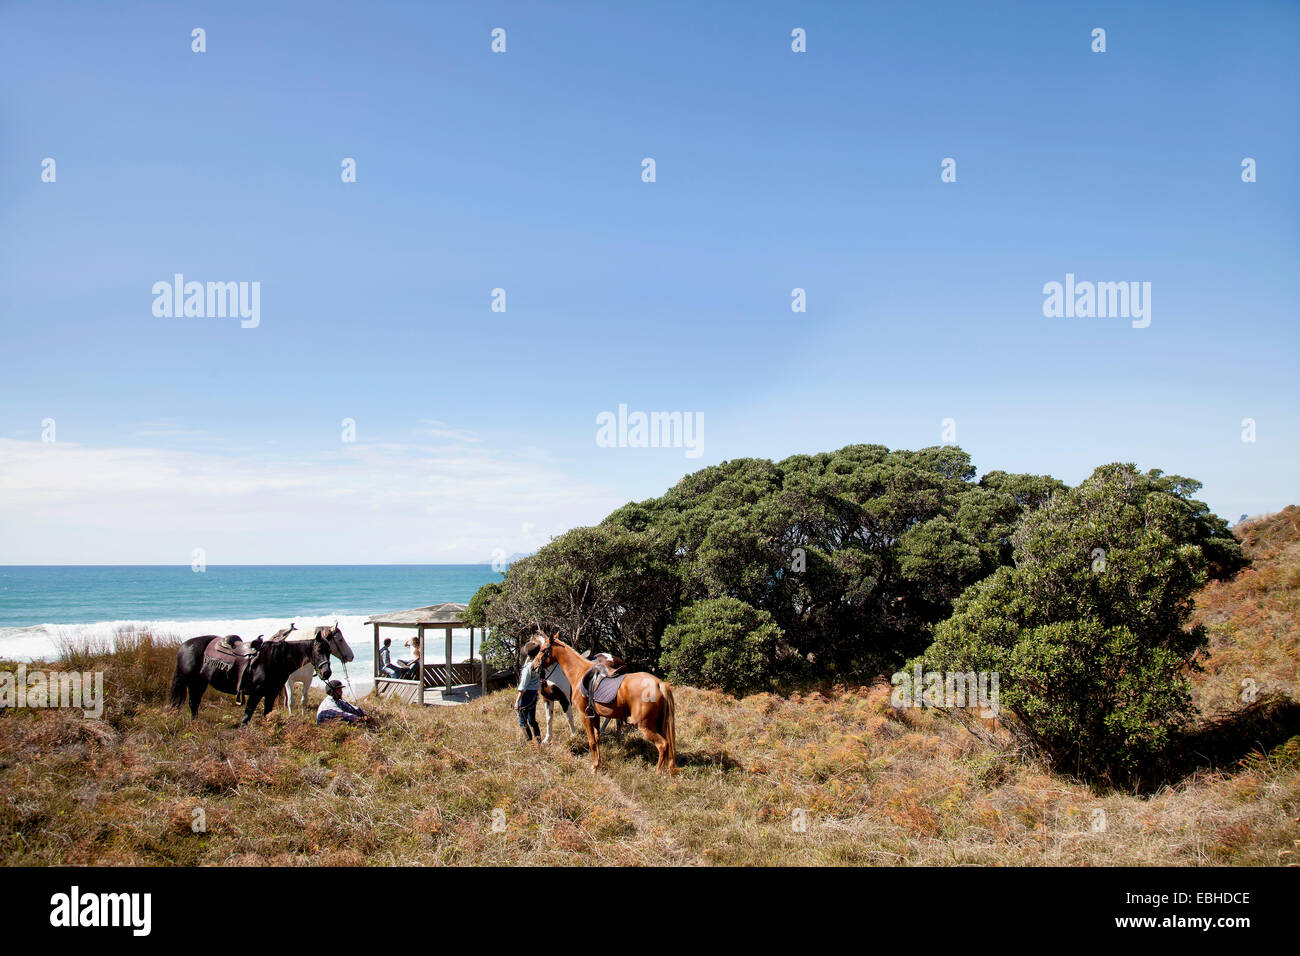 Horse riders taking break, Pakiri Beach, Auckland, New Zealand - Stock Image